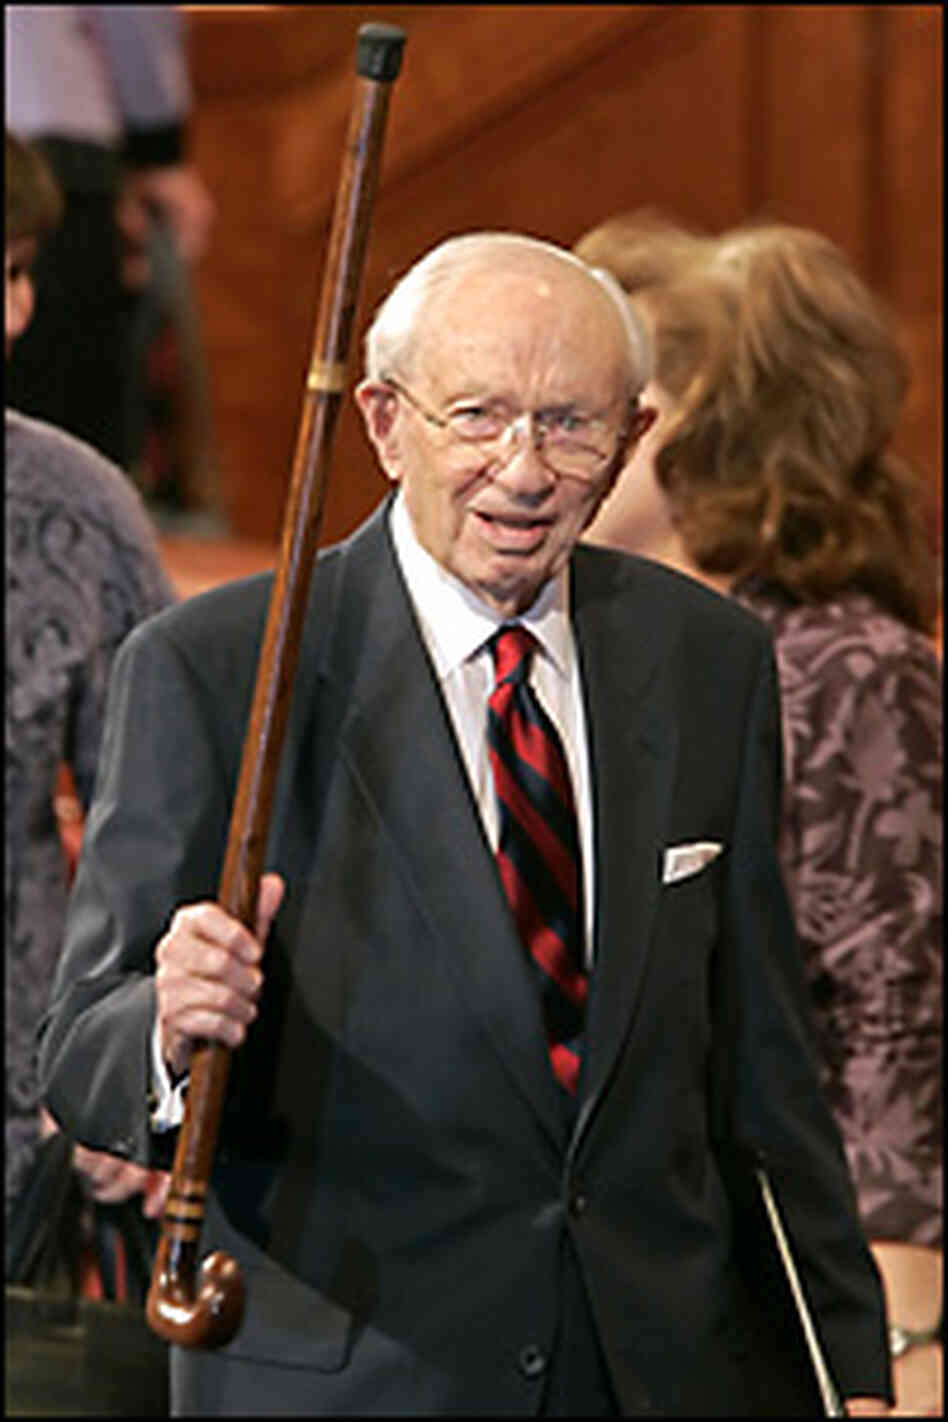 Gordon B. Hinckley in 2006. Credit: George Frey/Getty Images.